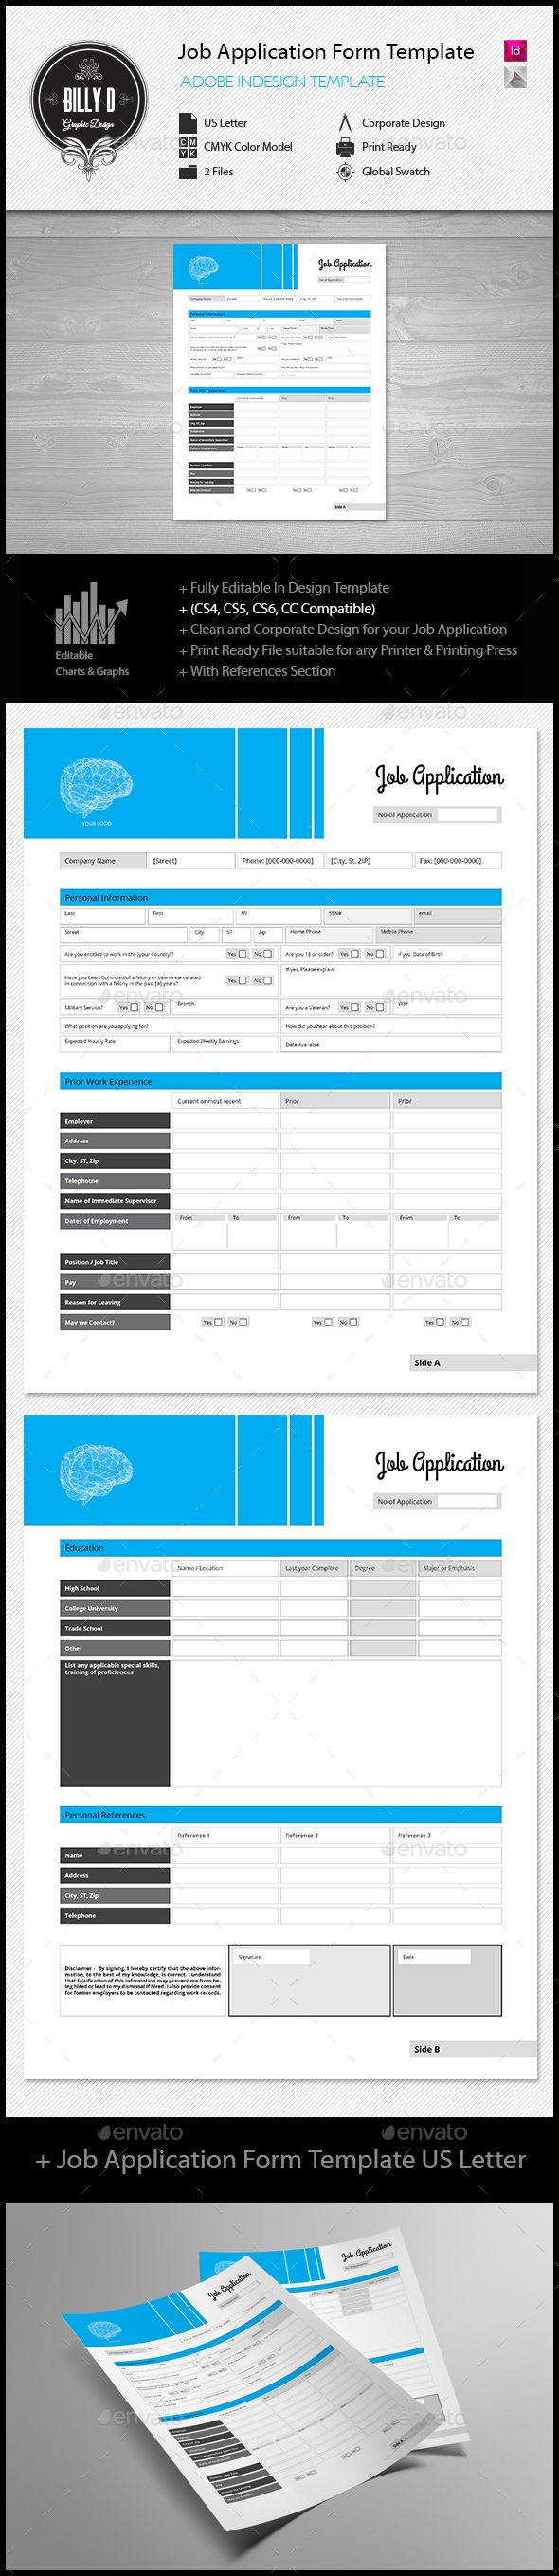 17 best images about application form document job application form template us letter indesign indd us letter application template